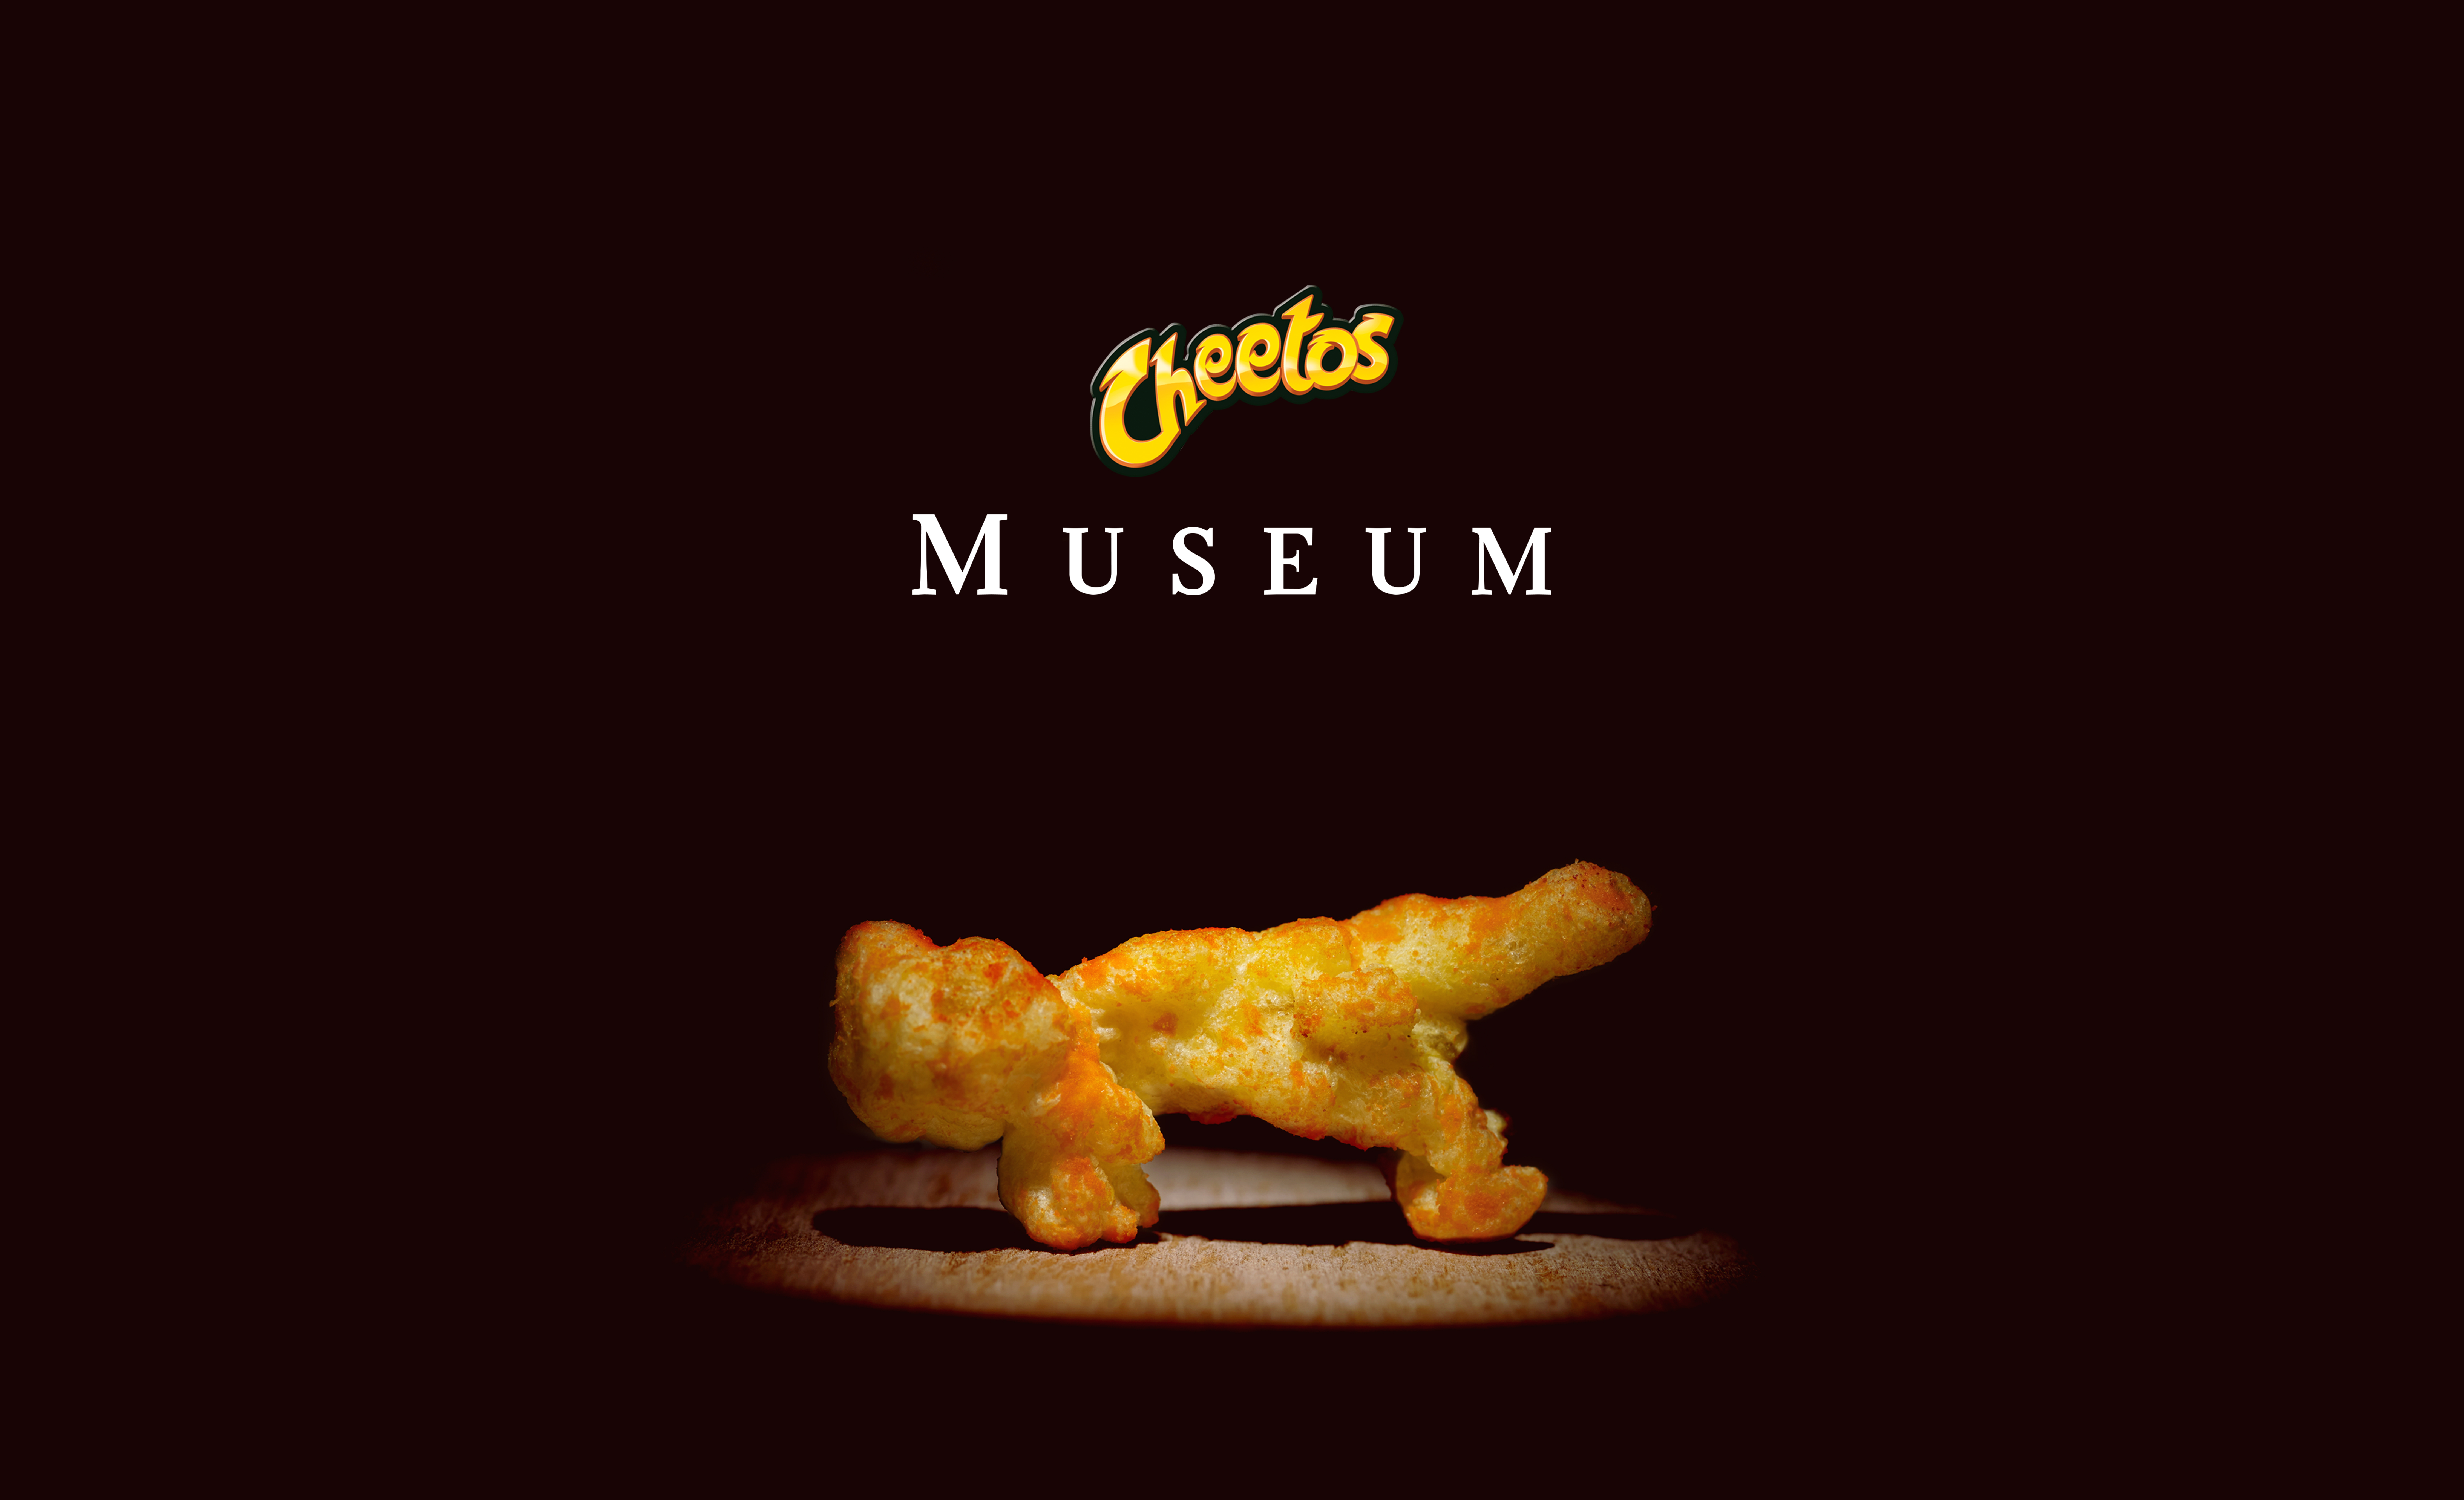 Thumbnail for Cheetos Museum